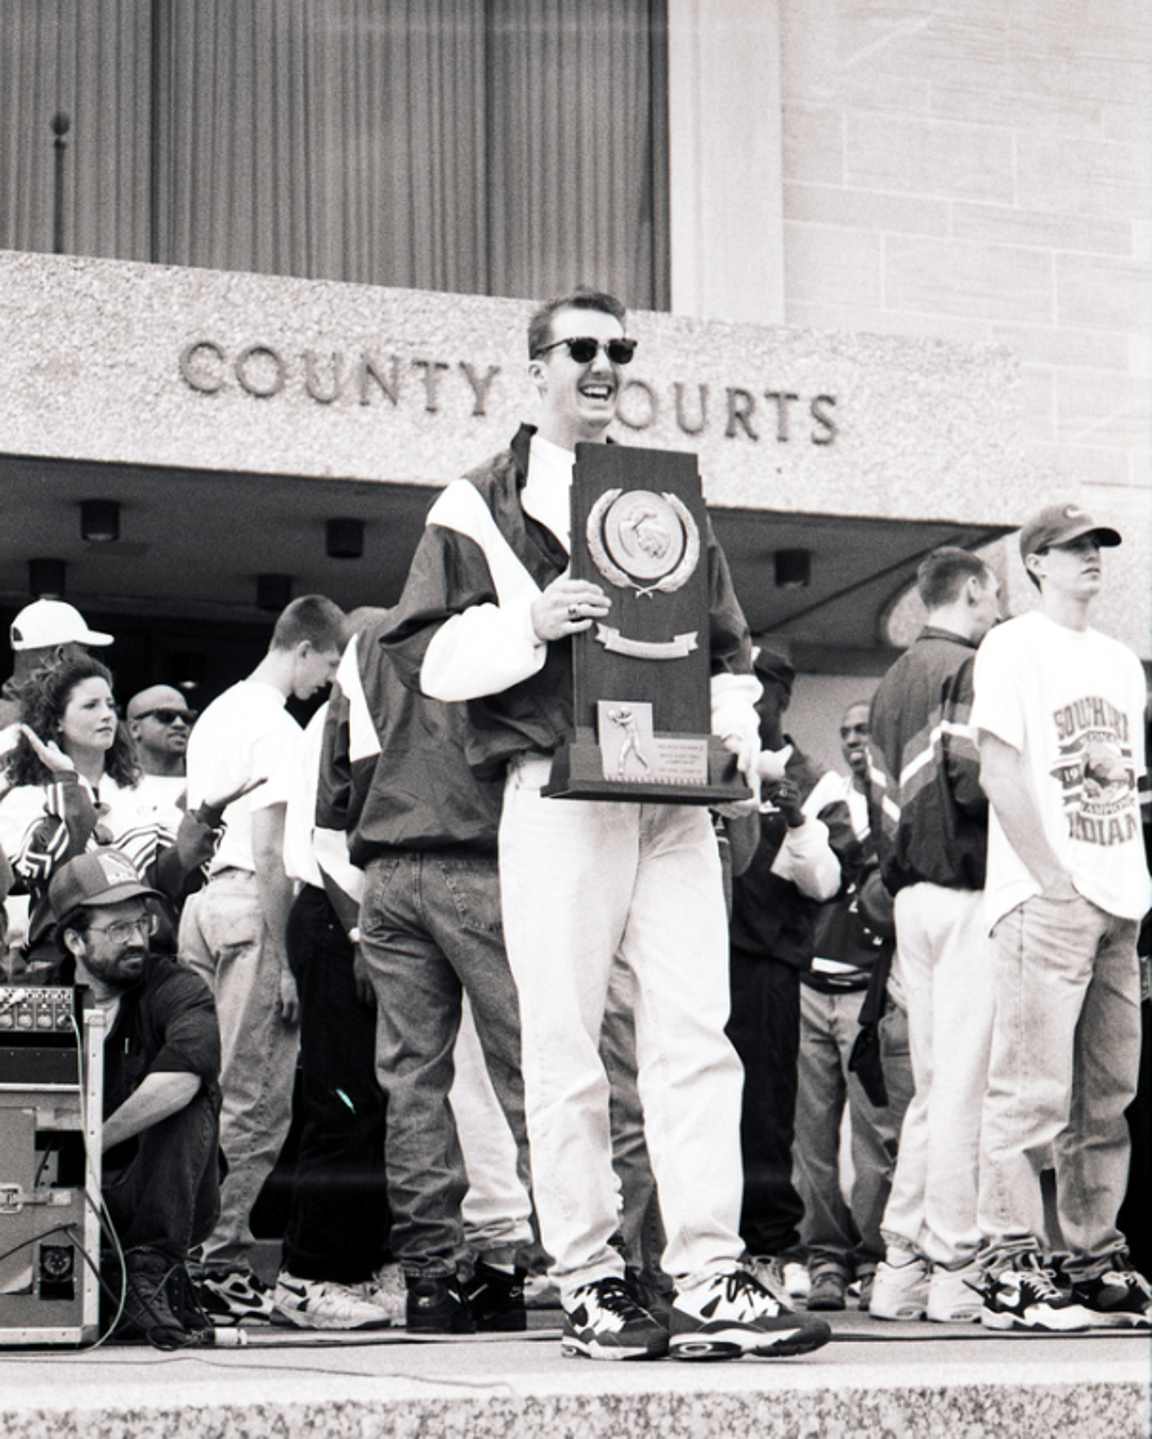 Brian Huebner at the 1995 celebration downtown.